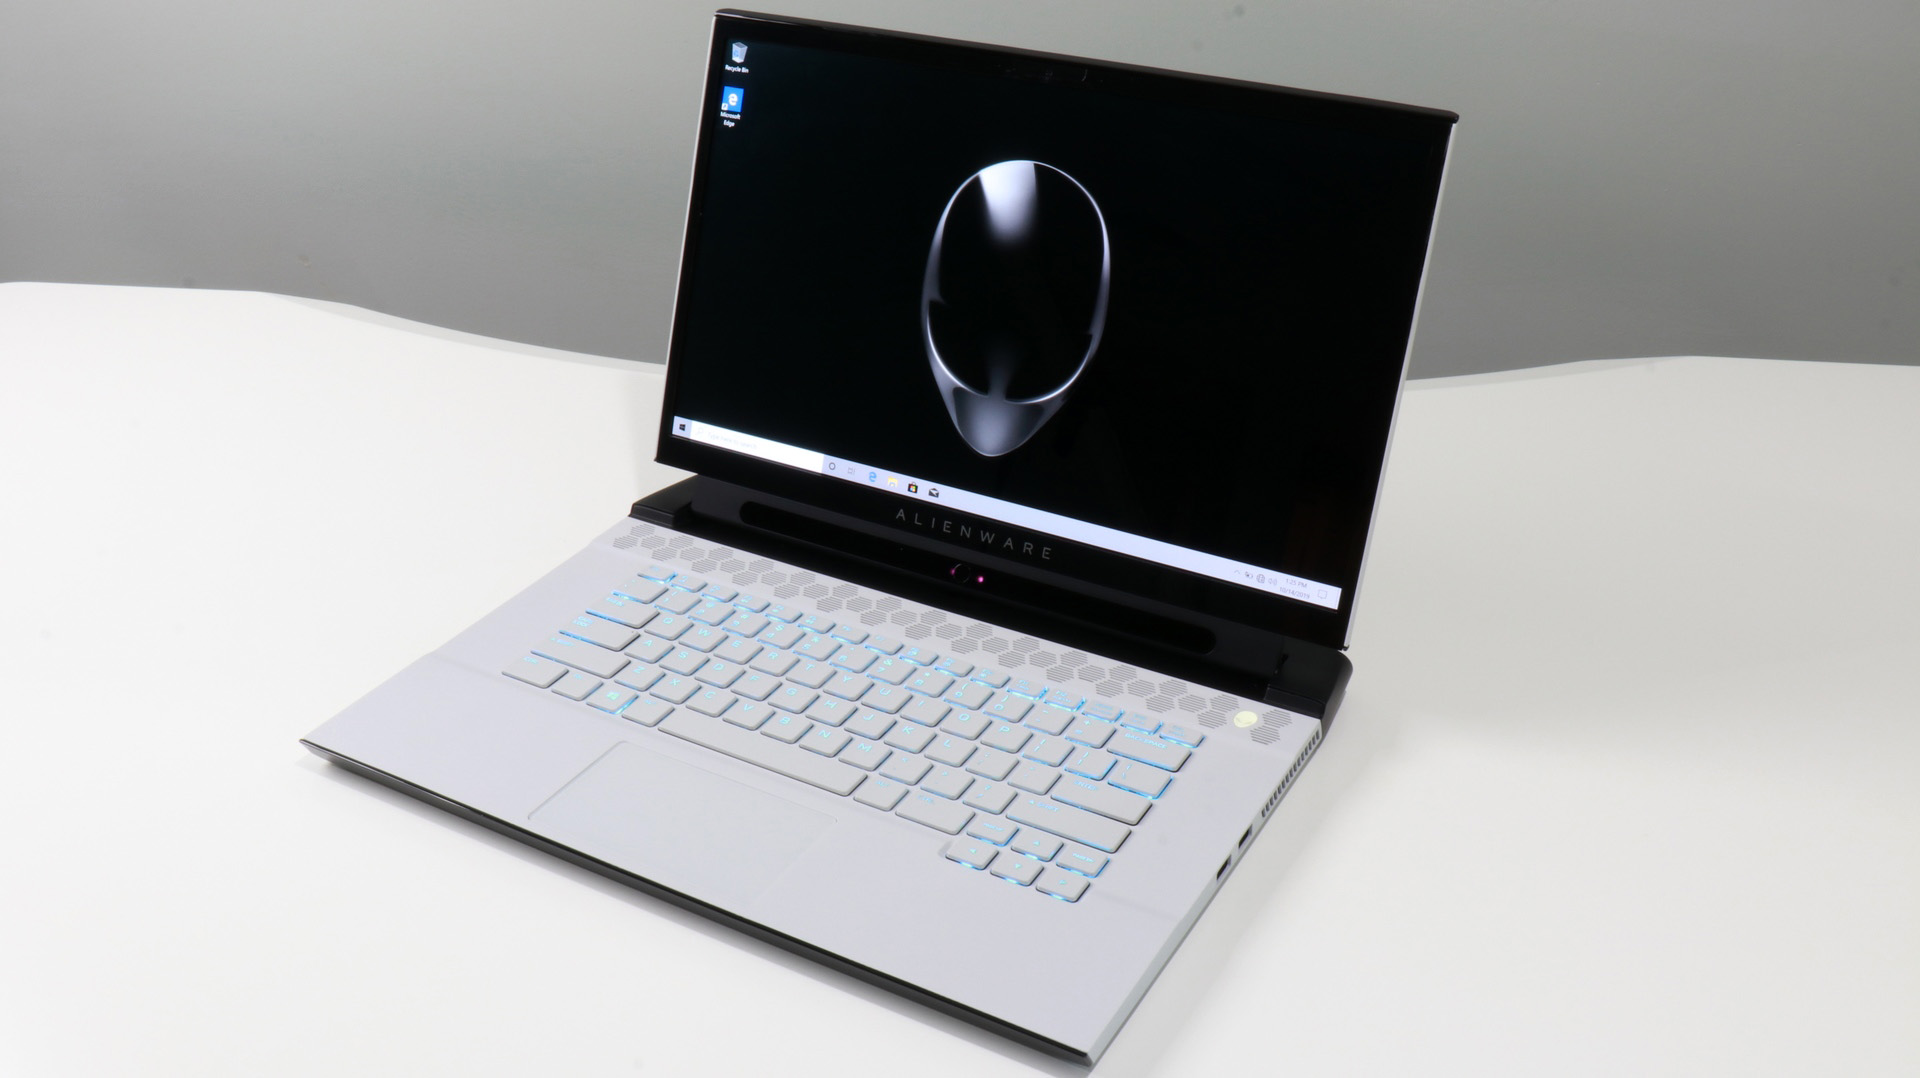 Alienware m15 R2 Review: Beautiful OLED, Beastly Performance